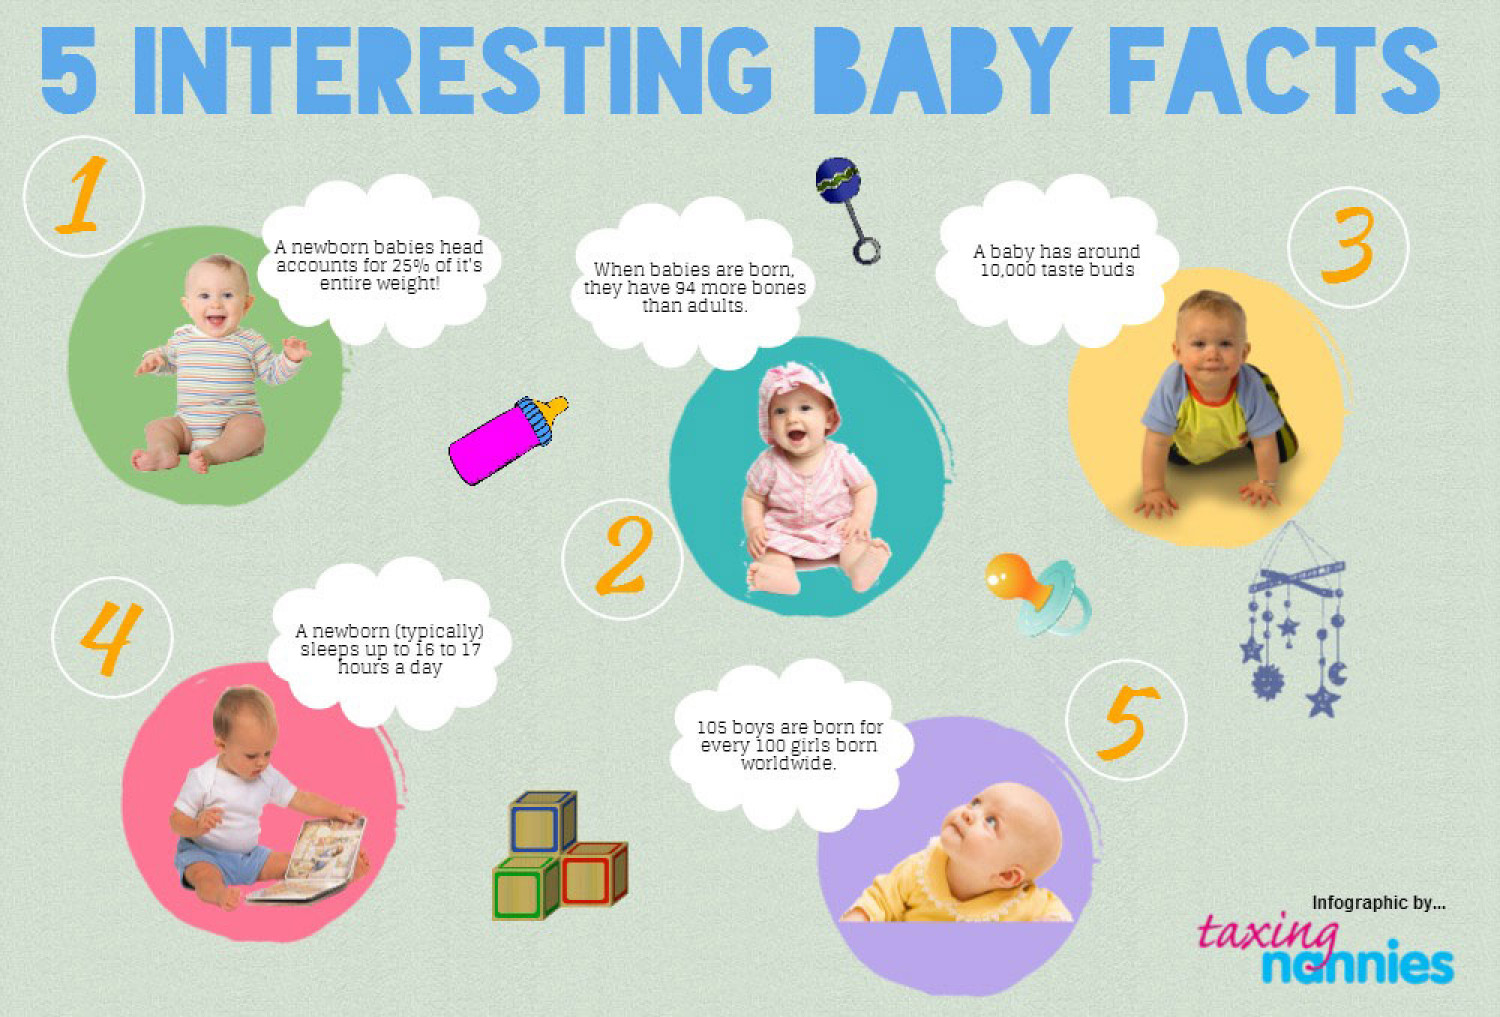 5 Interesting Baby Facts Infographic